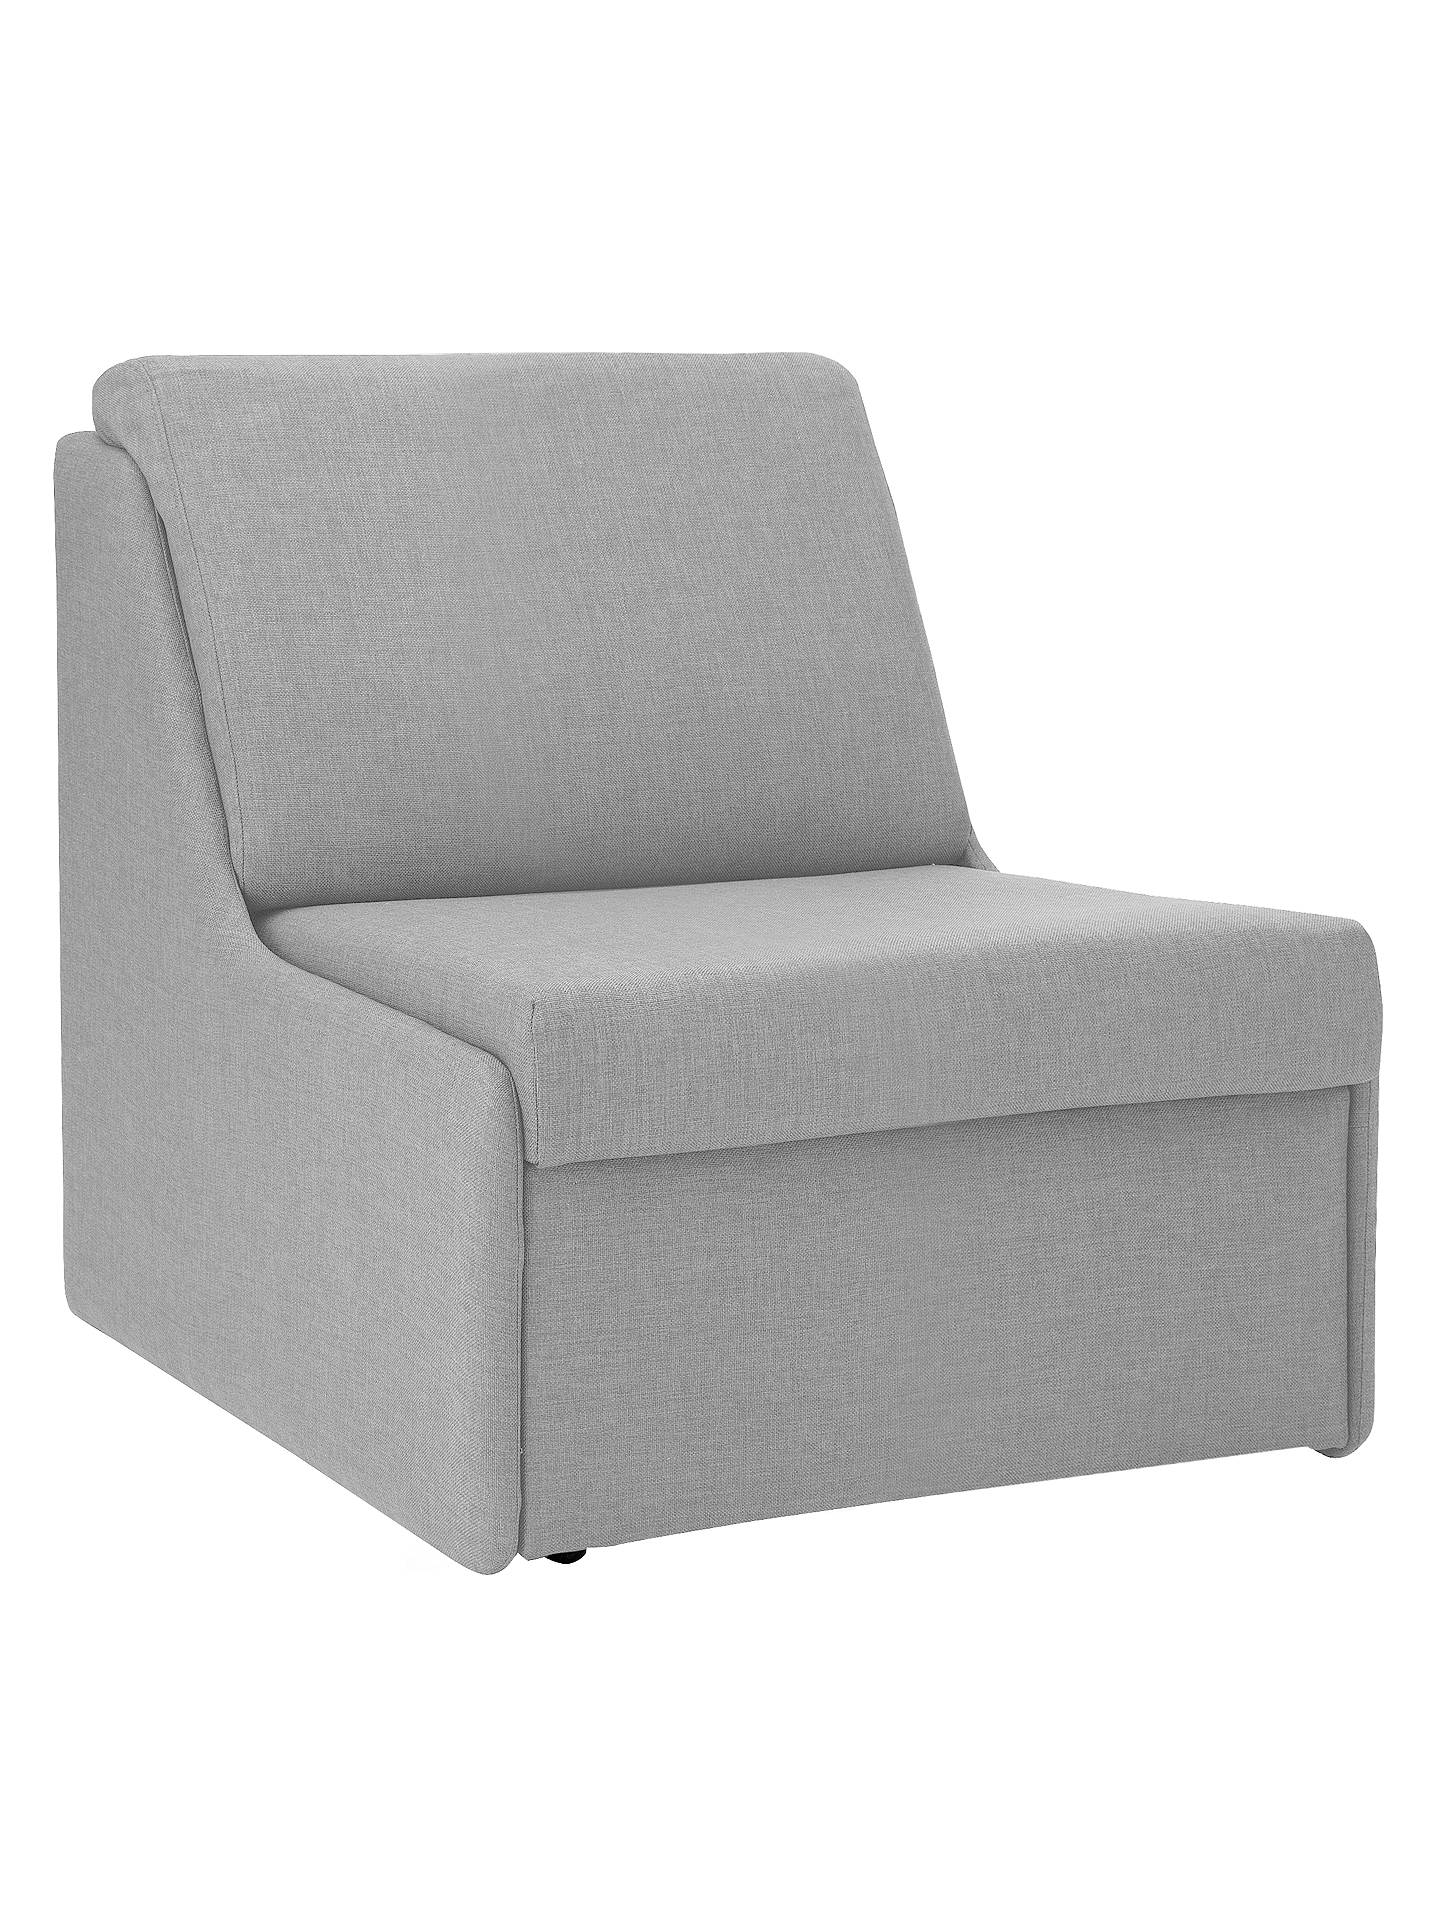 Stupendous John Lewis Jessie Armchair Sofabed At John Lewis Partners Ibusinesslaw Wood Chair Design Ideas Ibusinesslaworg